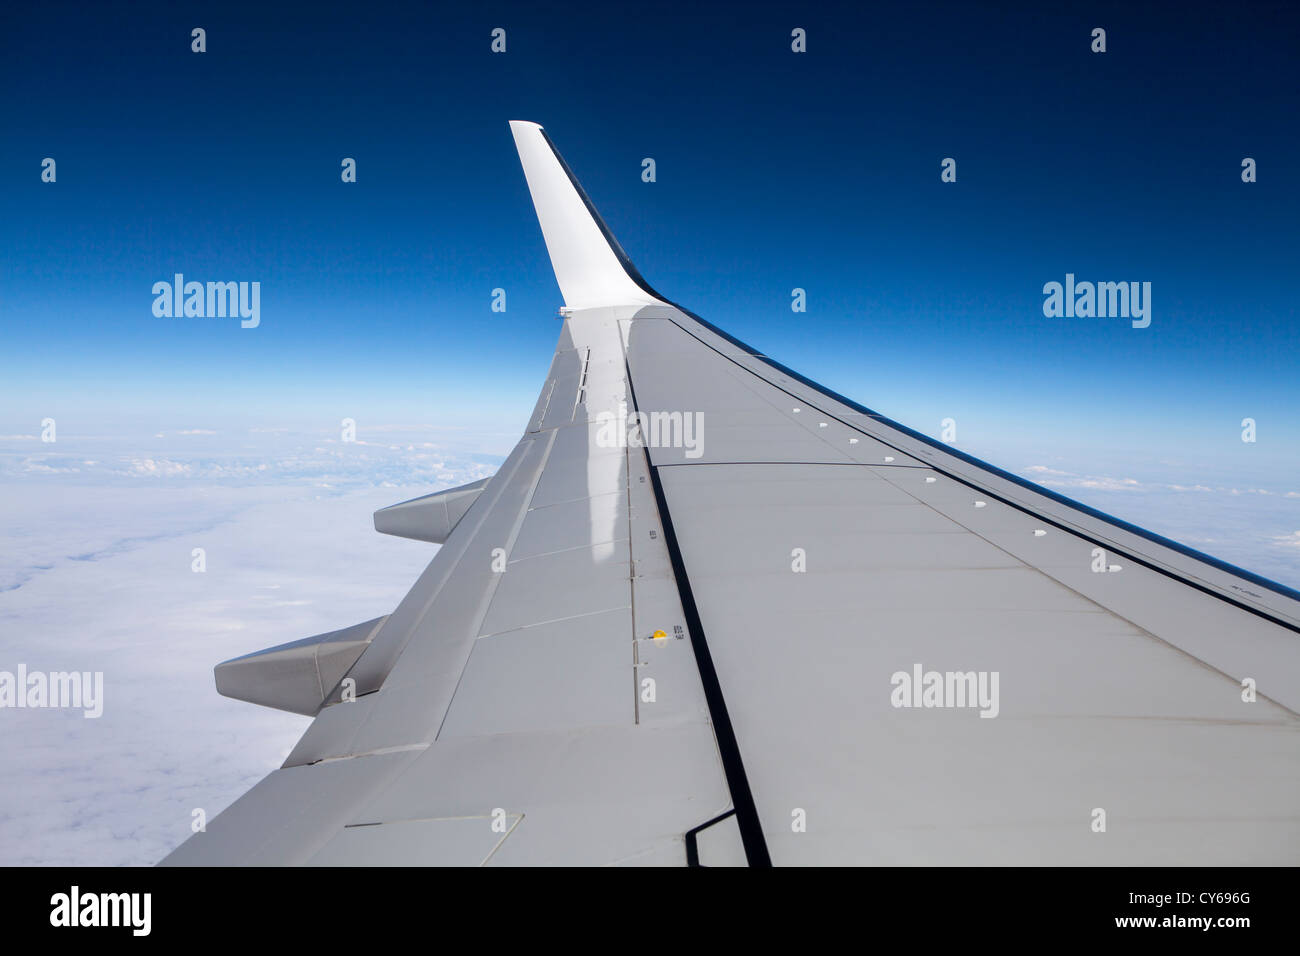 Airplane Boeing-737 wing as seen from a plane window with a bright blue sky. - Stock Image